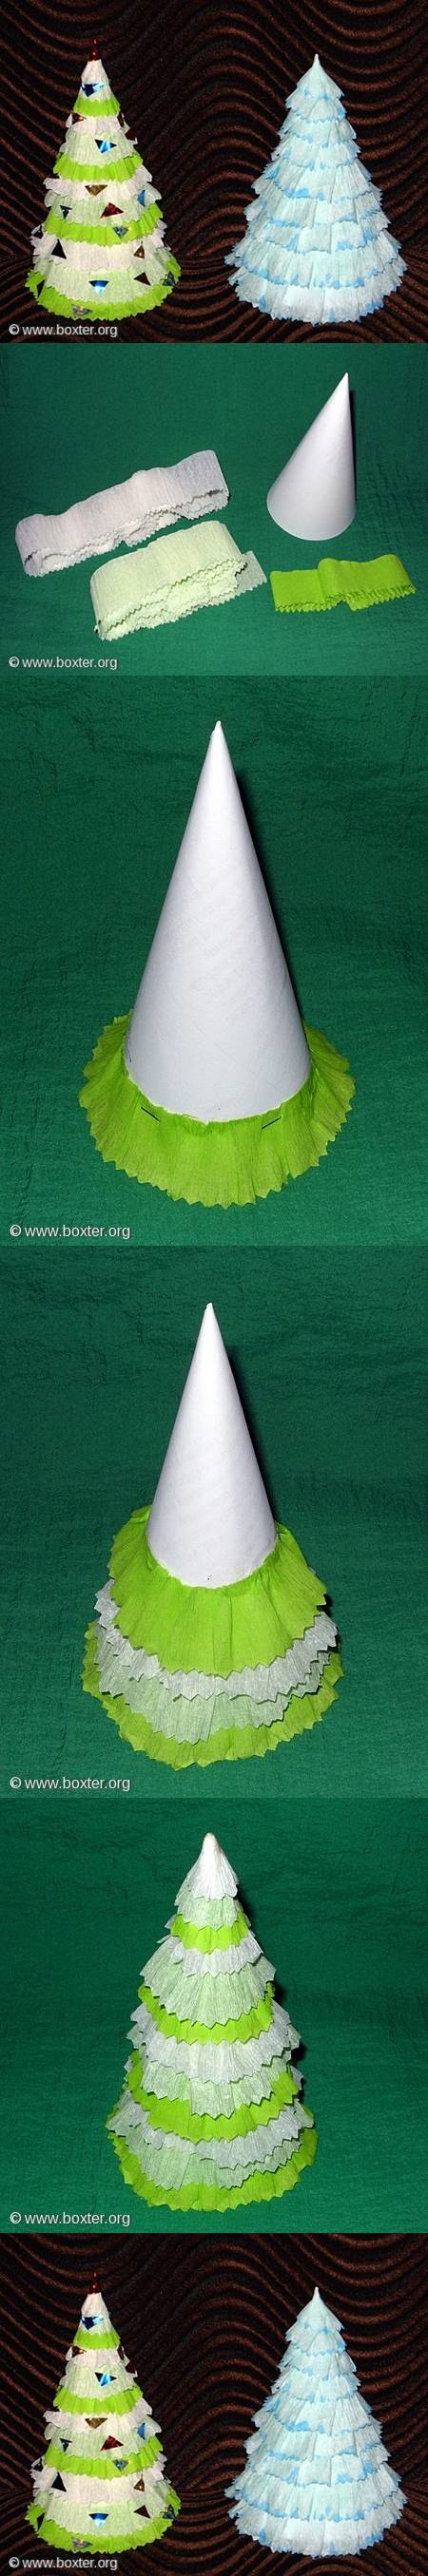 diy-crepe-paper-christmas-tree